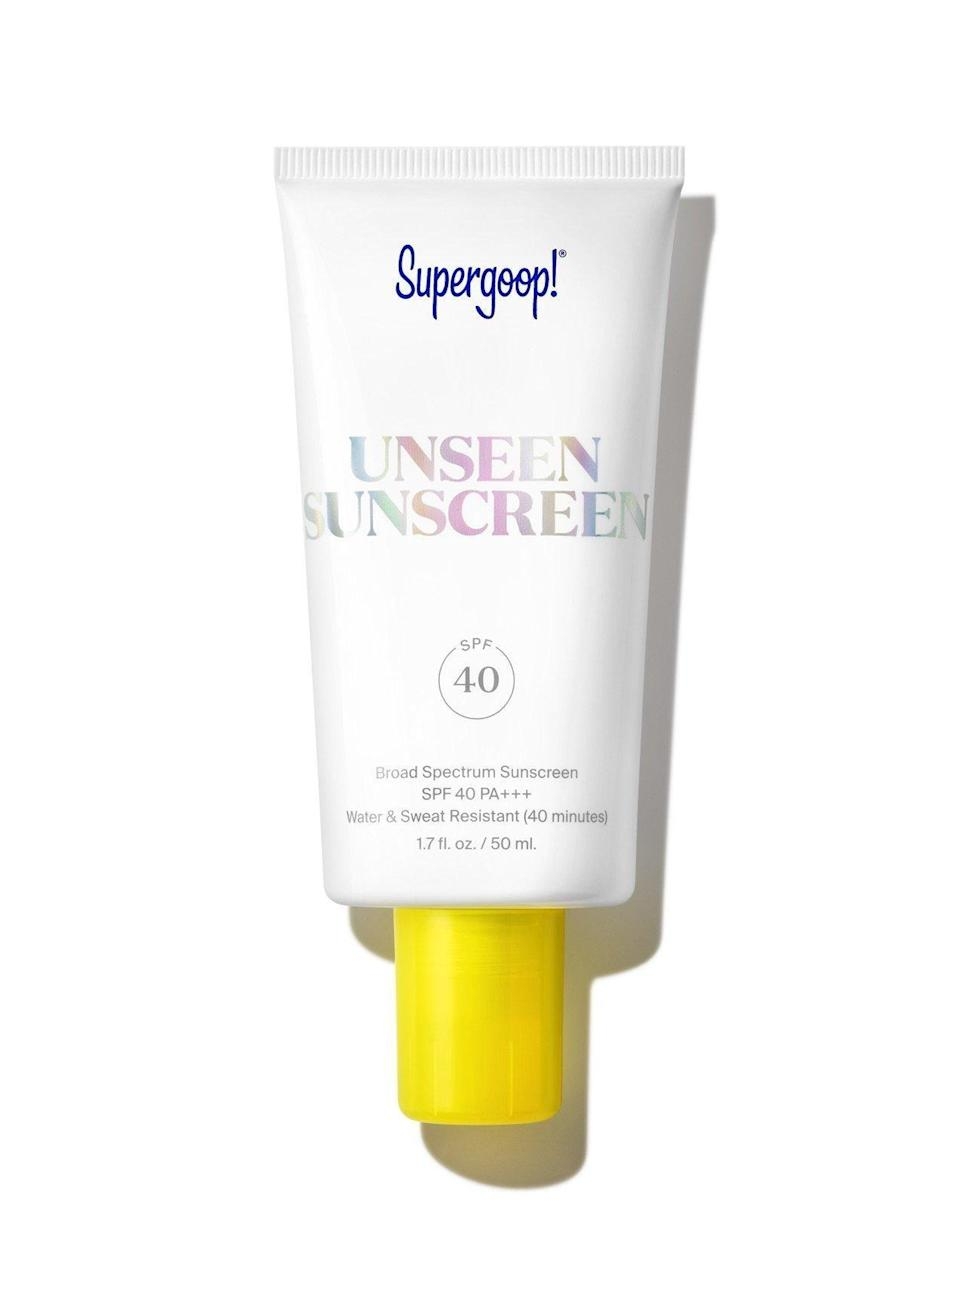 """<p><strong>Supergoop!</strong></p><p>sephora.com</p><p><strong>$34.00</strong></p><p><a href=""""https://fave.co/3x4Ypg9"""" rel=""""nofollow noopener"""" target=""""_blank"""" data-ylk=""""slk:SHOP NOW"""" class=""""link rapid-noclick-resp"""">SHOP NOW</a></p><p>Let's face it, your dad probably won't wear sunscreen unless it feels like nothing. This invisible SPF will trick his mind while protecting his skin.</p>"""